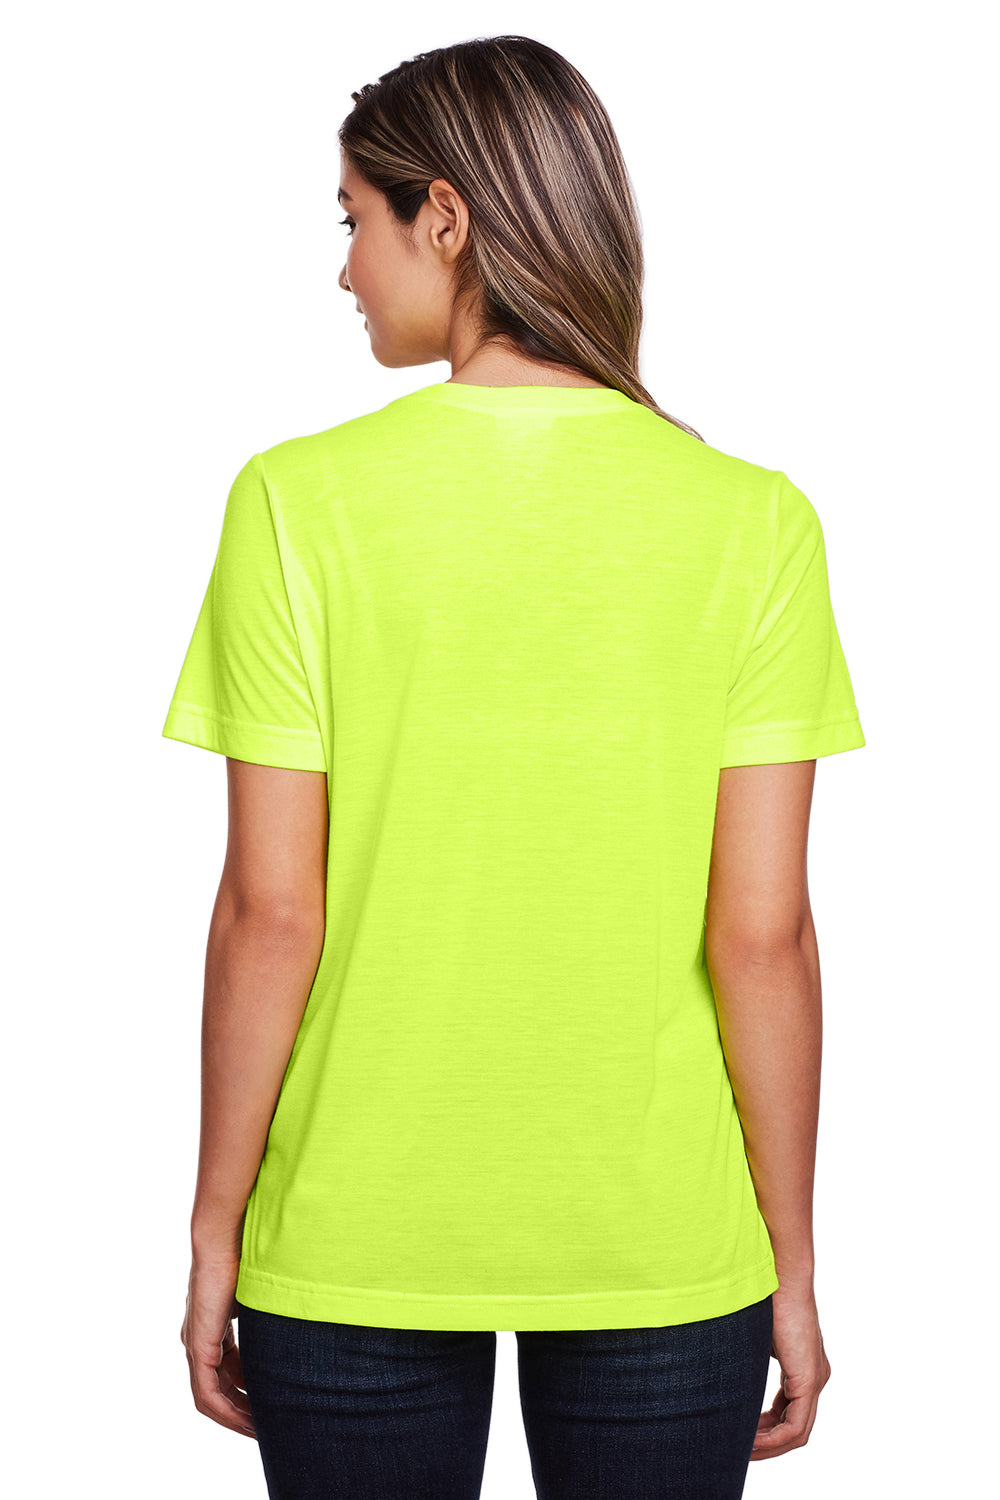 Core 365 CE111W Womens Fusion ChromaSoft Performance Moisture Wicking Short Sleeve Scoop Neck T-Shirt Safety Yellow Back